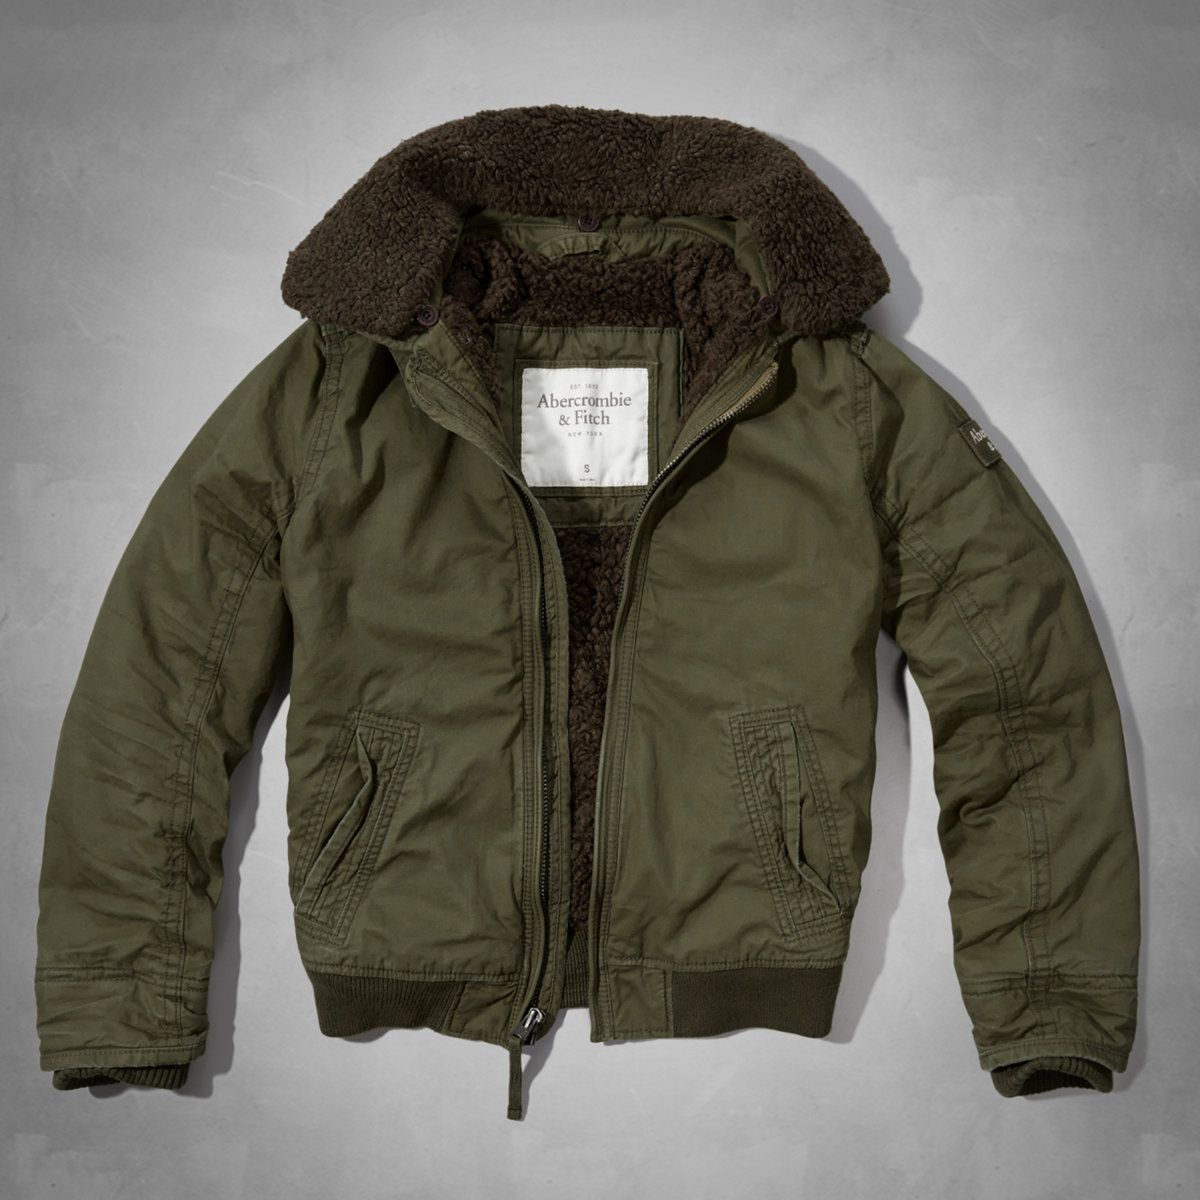 Abercrombie & Fitch Applique Logo Sherpa-lined Hoodie Clearance Olive KOE